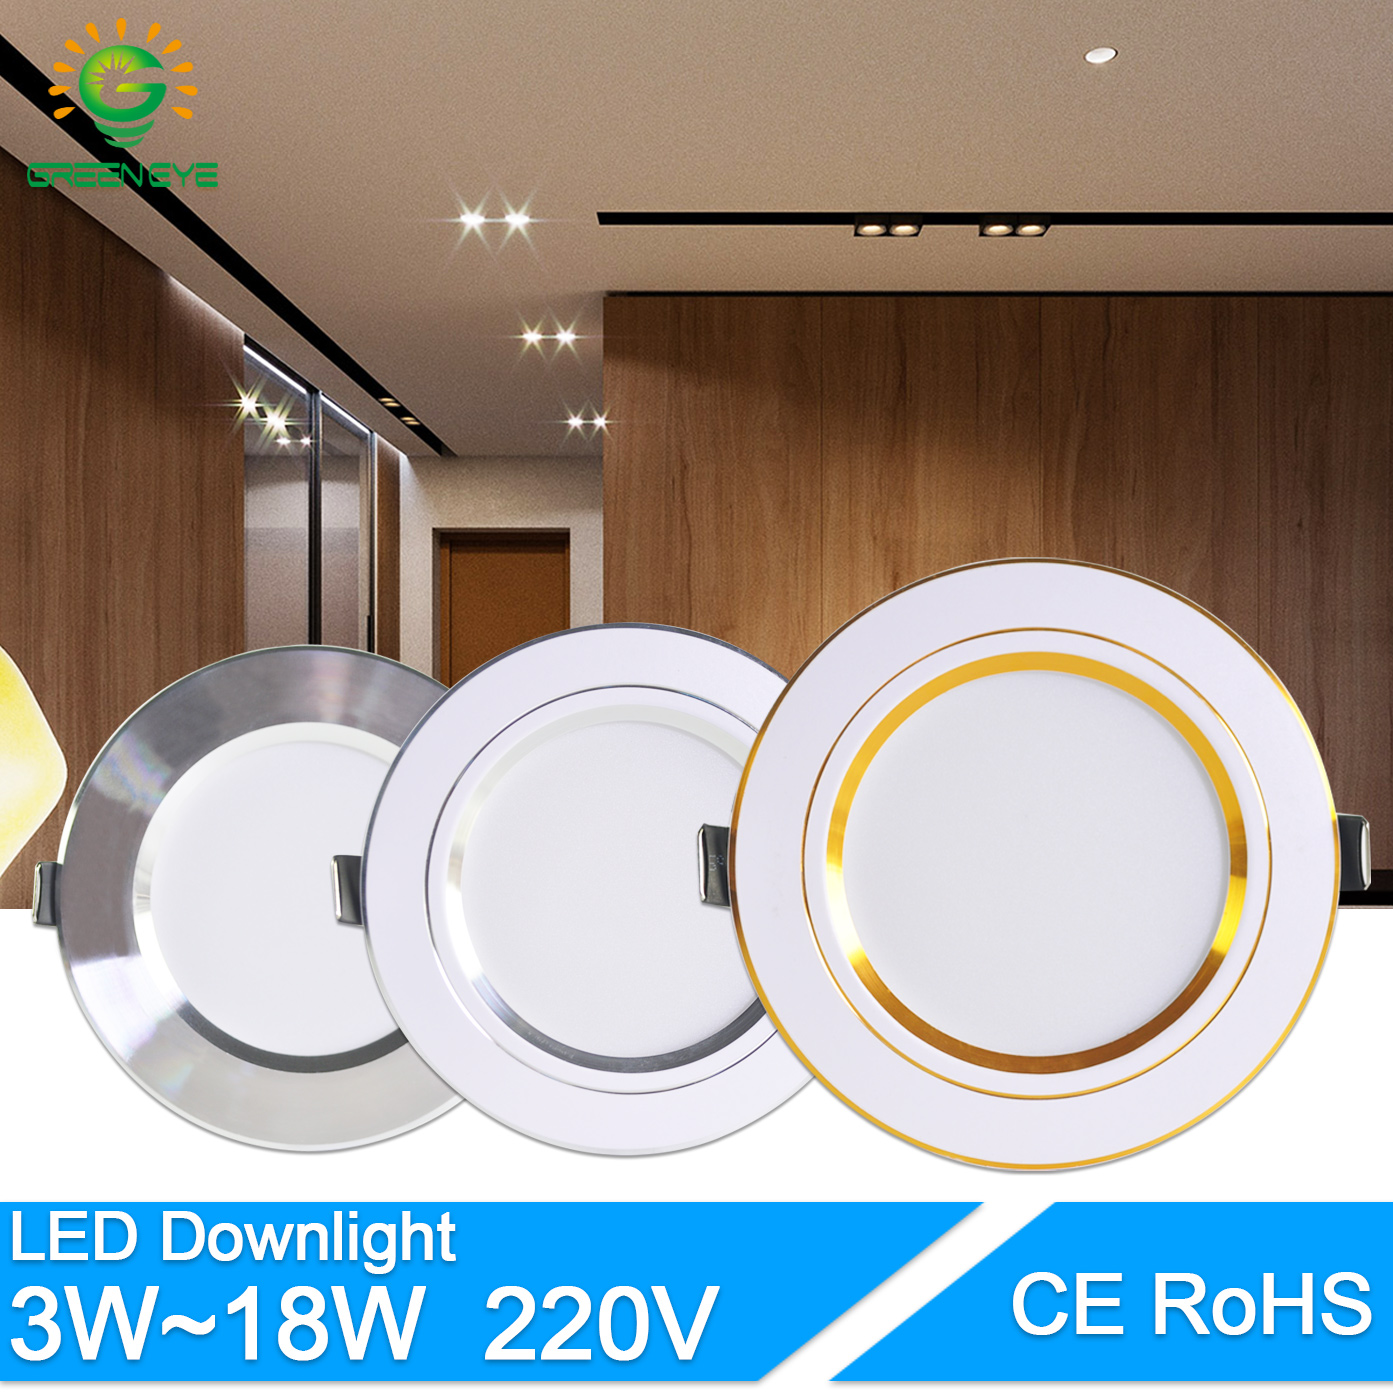 Downlight 3W 5W 9W 12W 15W 18W Spot Led Downlight AC 220V Gold Silver White Ultra Thin Aluminum Round Recessed LED Spot Lighting(China)